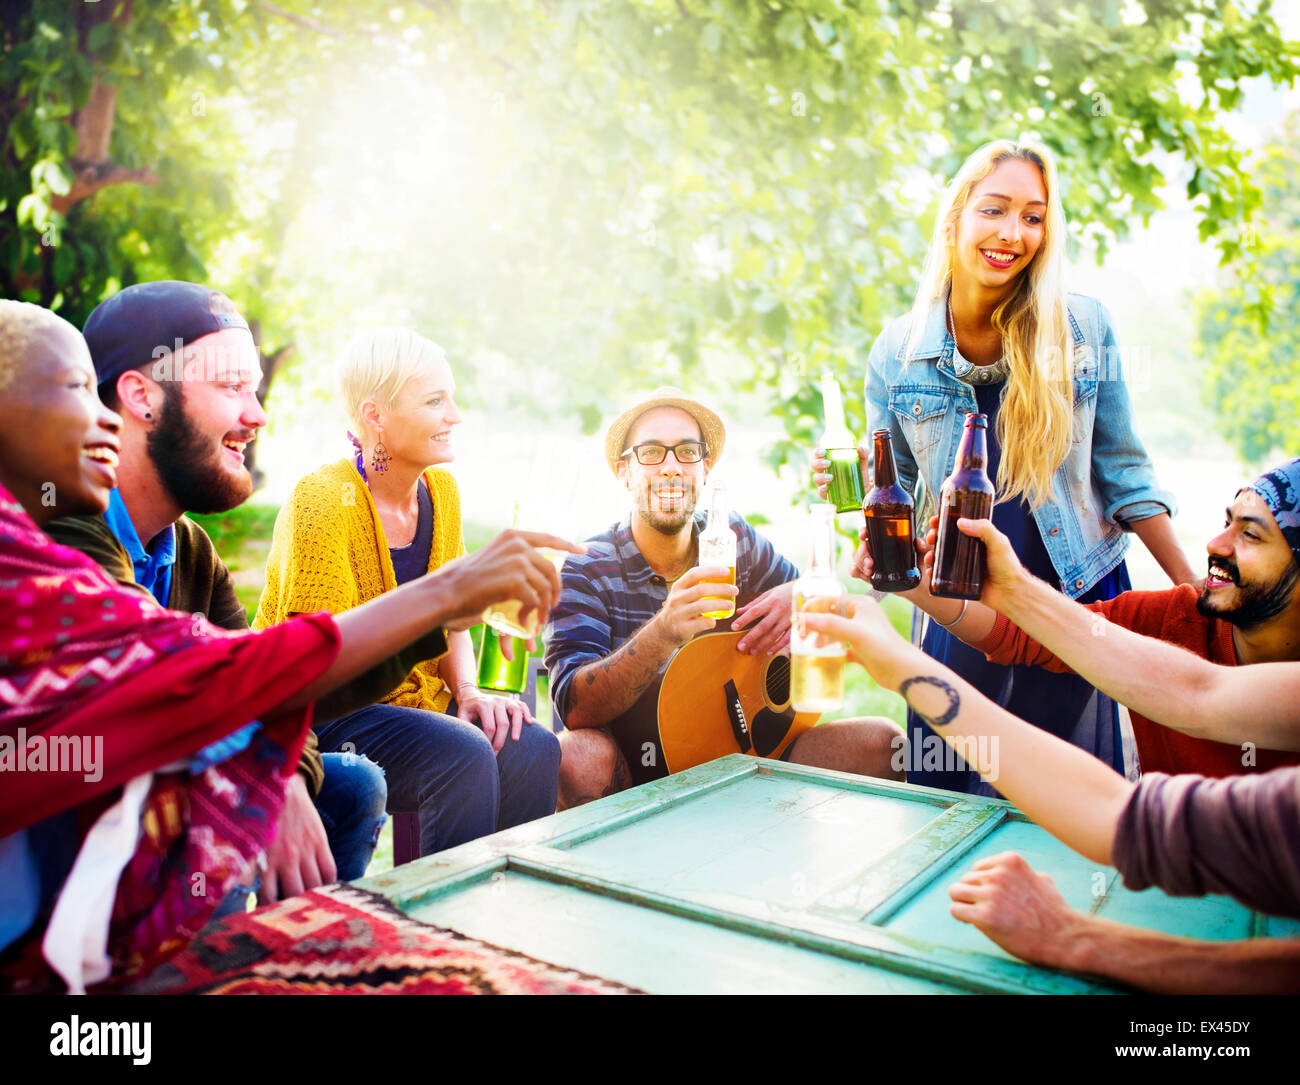 Friend Celebrate Party Picnic Joyful Lifestyle Drinking Concept - Stock Image